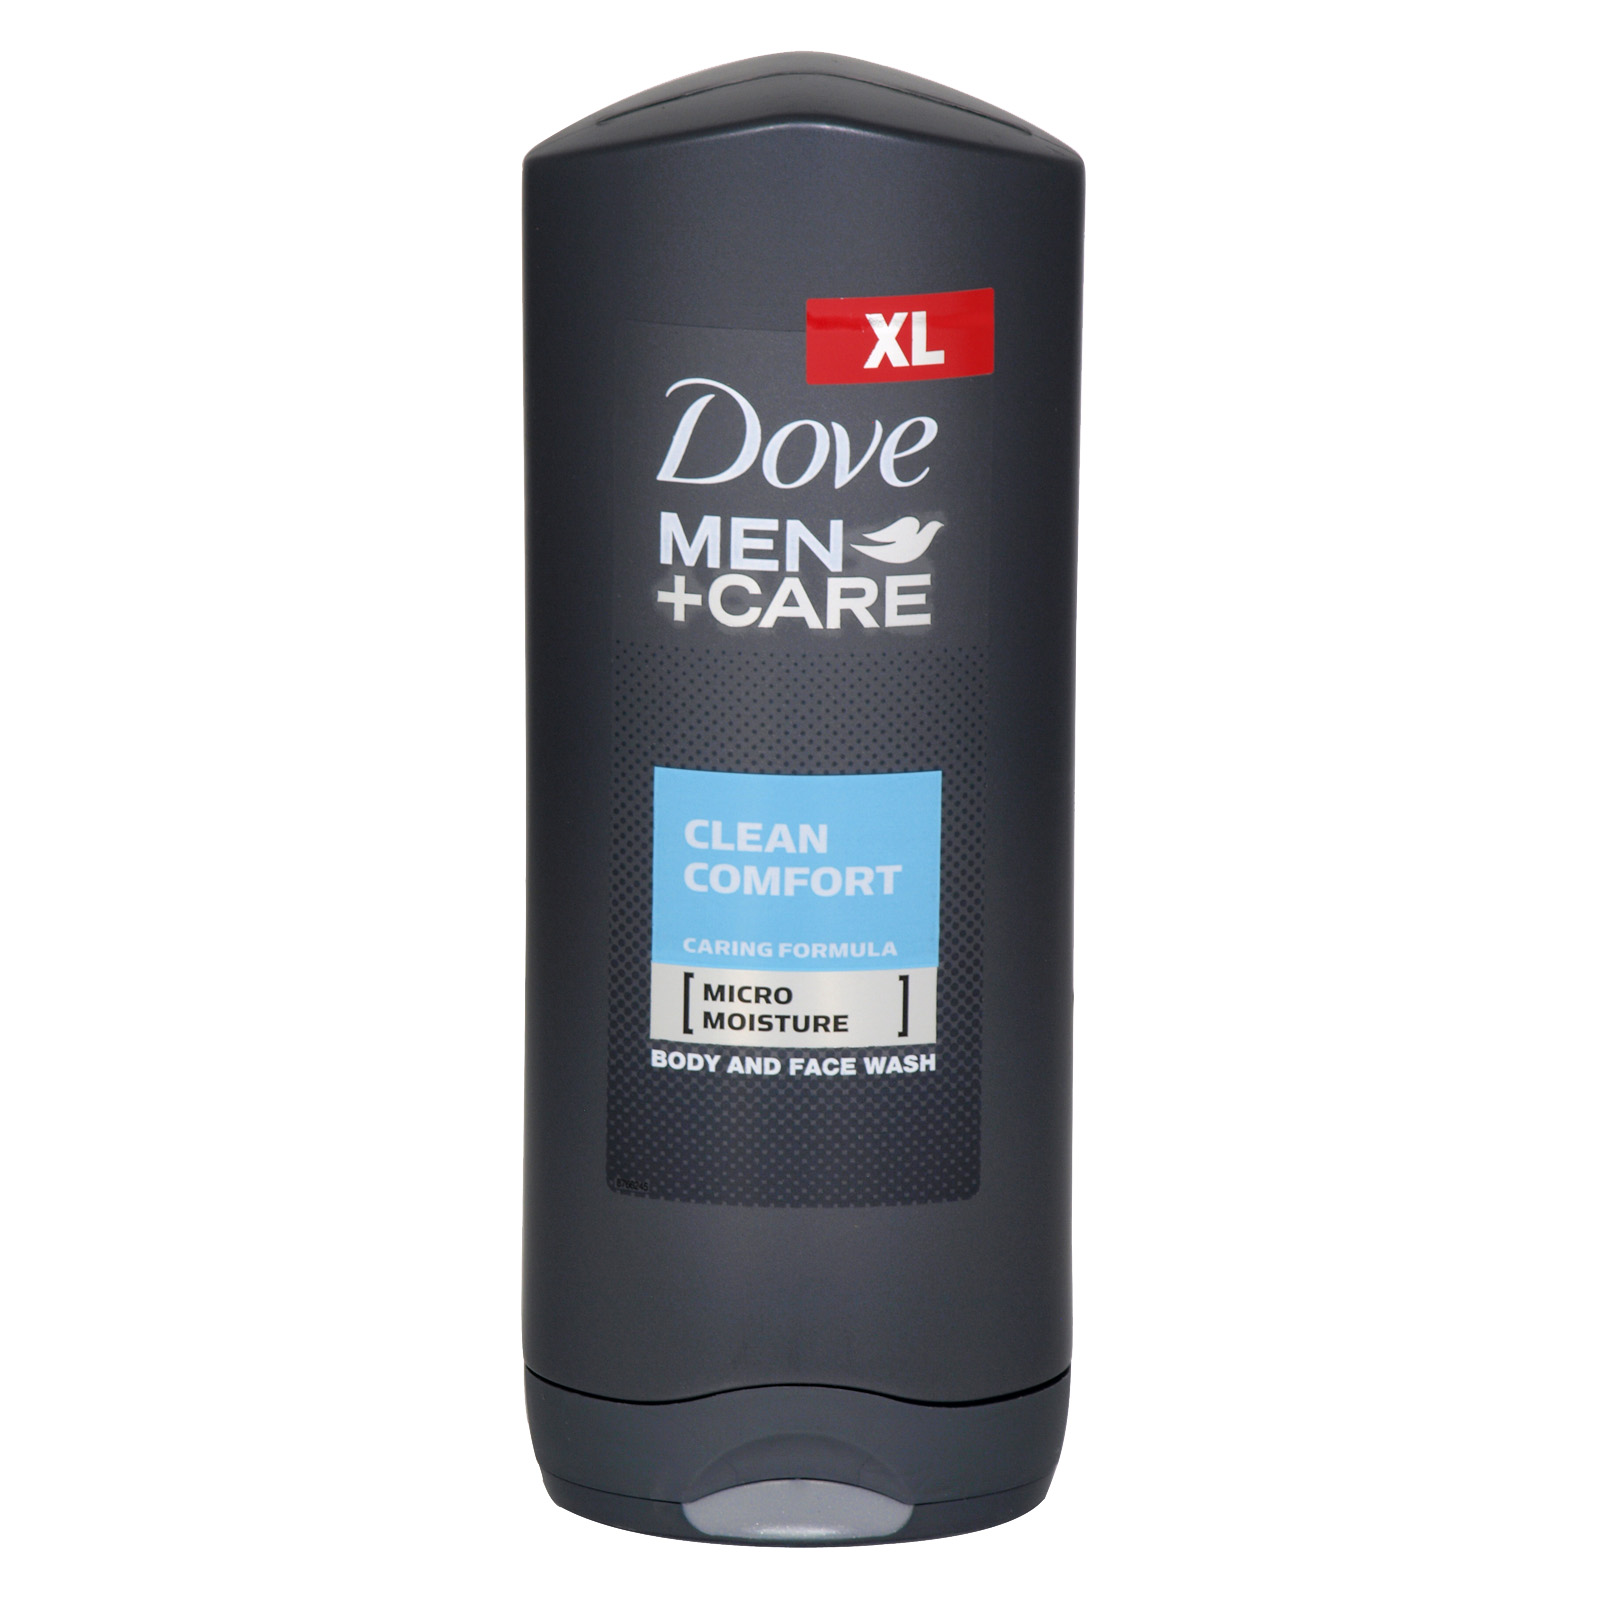 DOVE MEN+CARE 400ML FACE+BODY WASH CLEAN COMFORT X 6